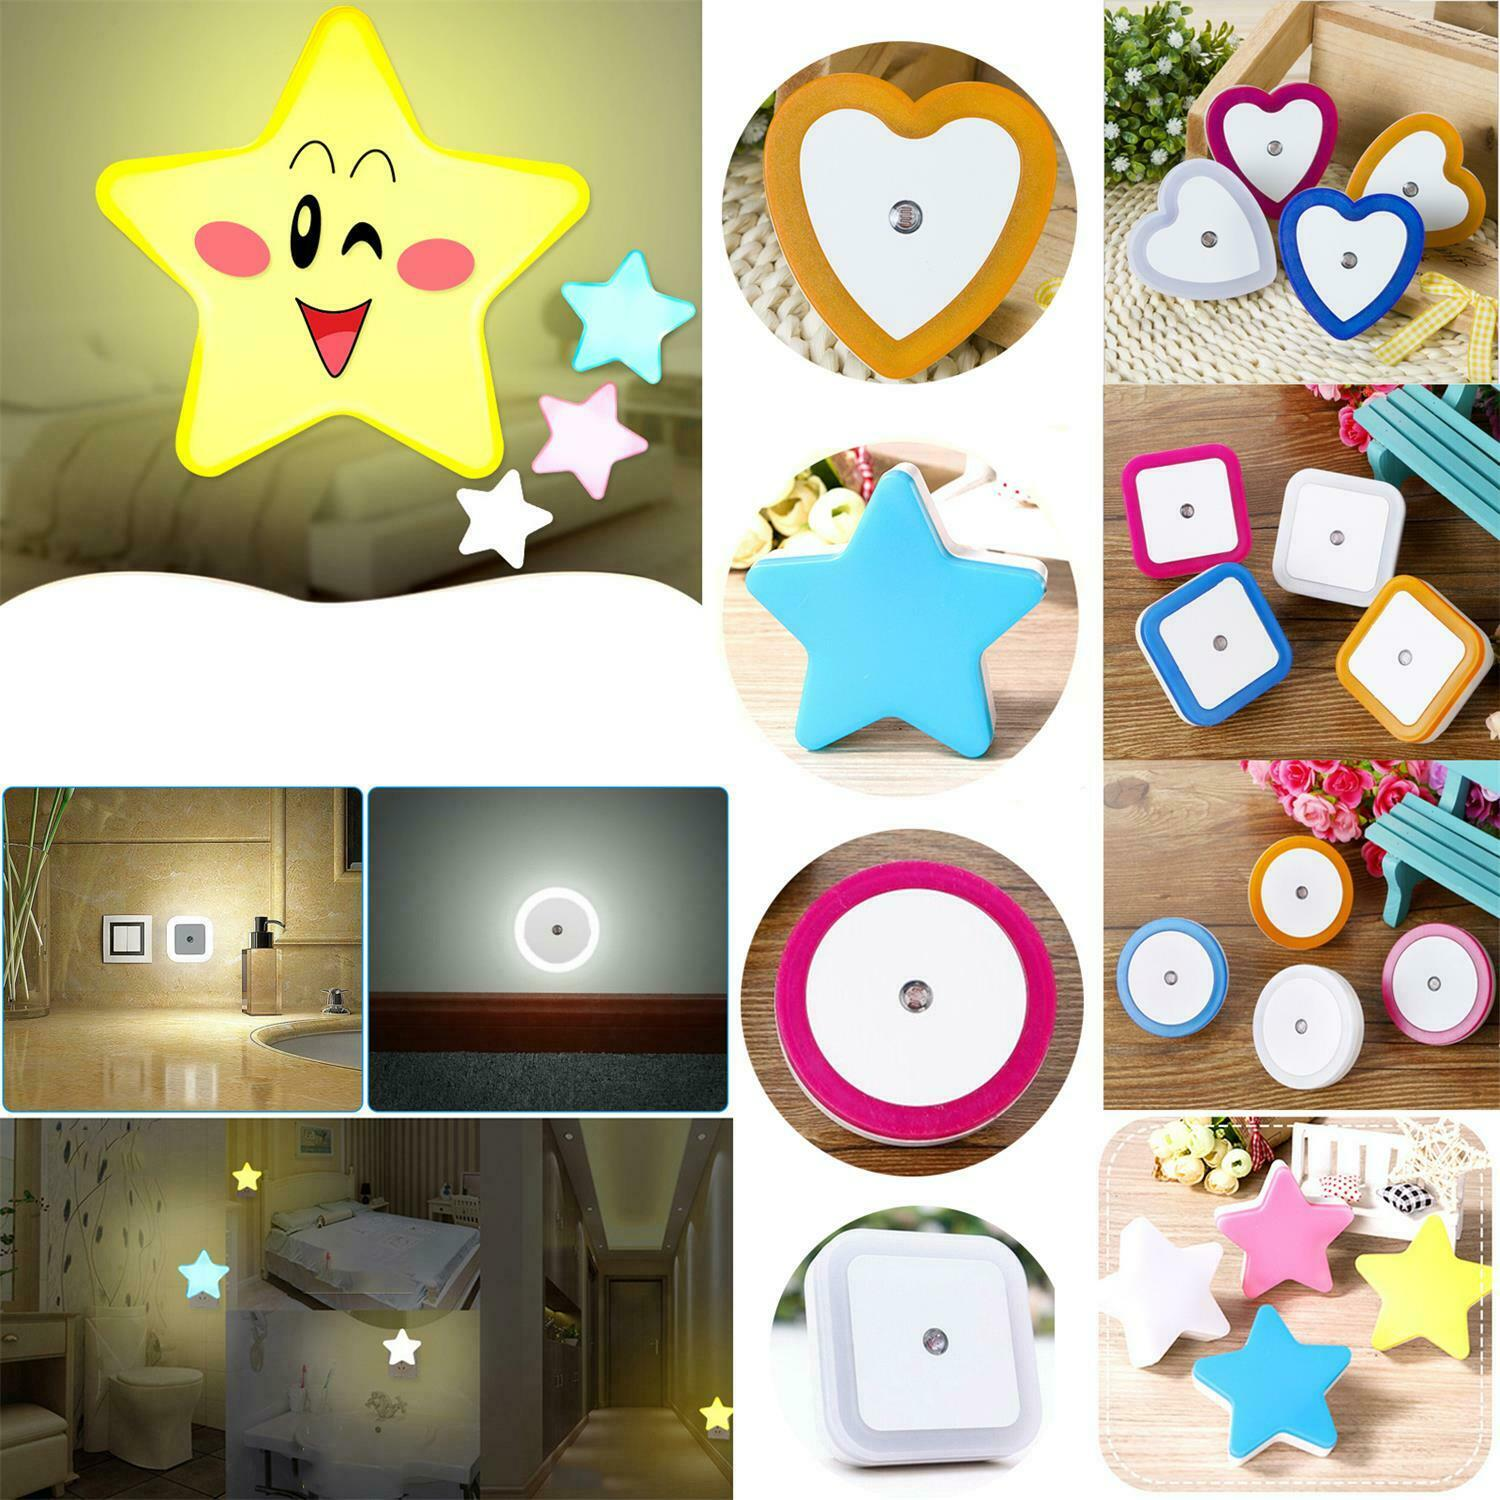 Mini Cute Wall Plug-in LED Night Light Auto Sensor Bedside Lamp For Bedroom Kid's Room Hallway Corridor Stairs EU/US 110V 220V